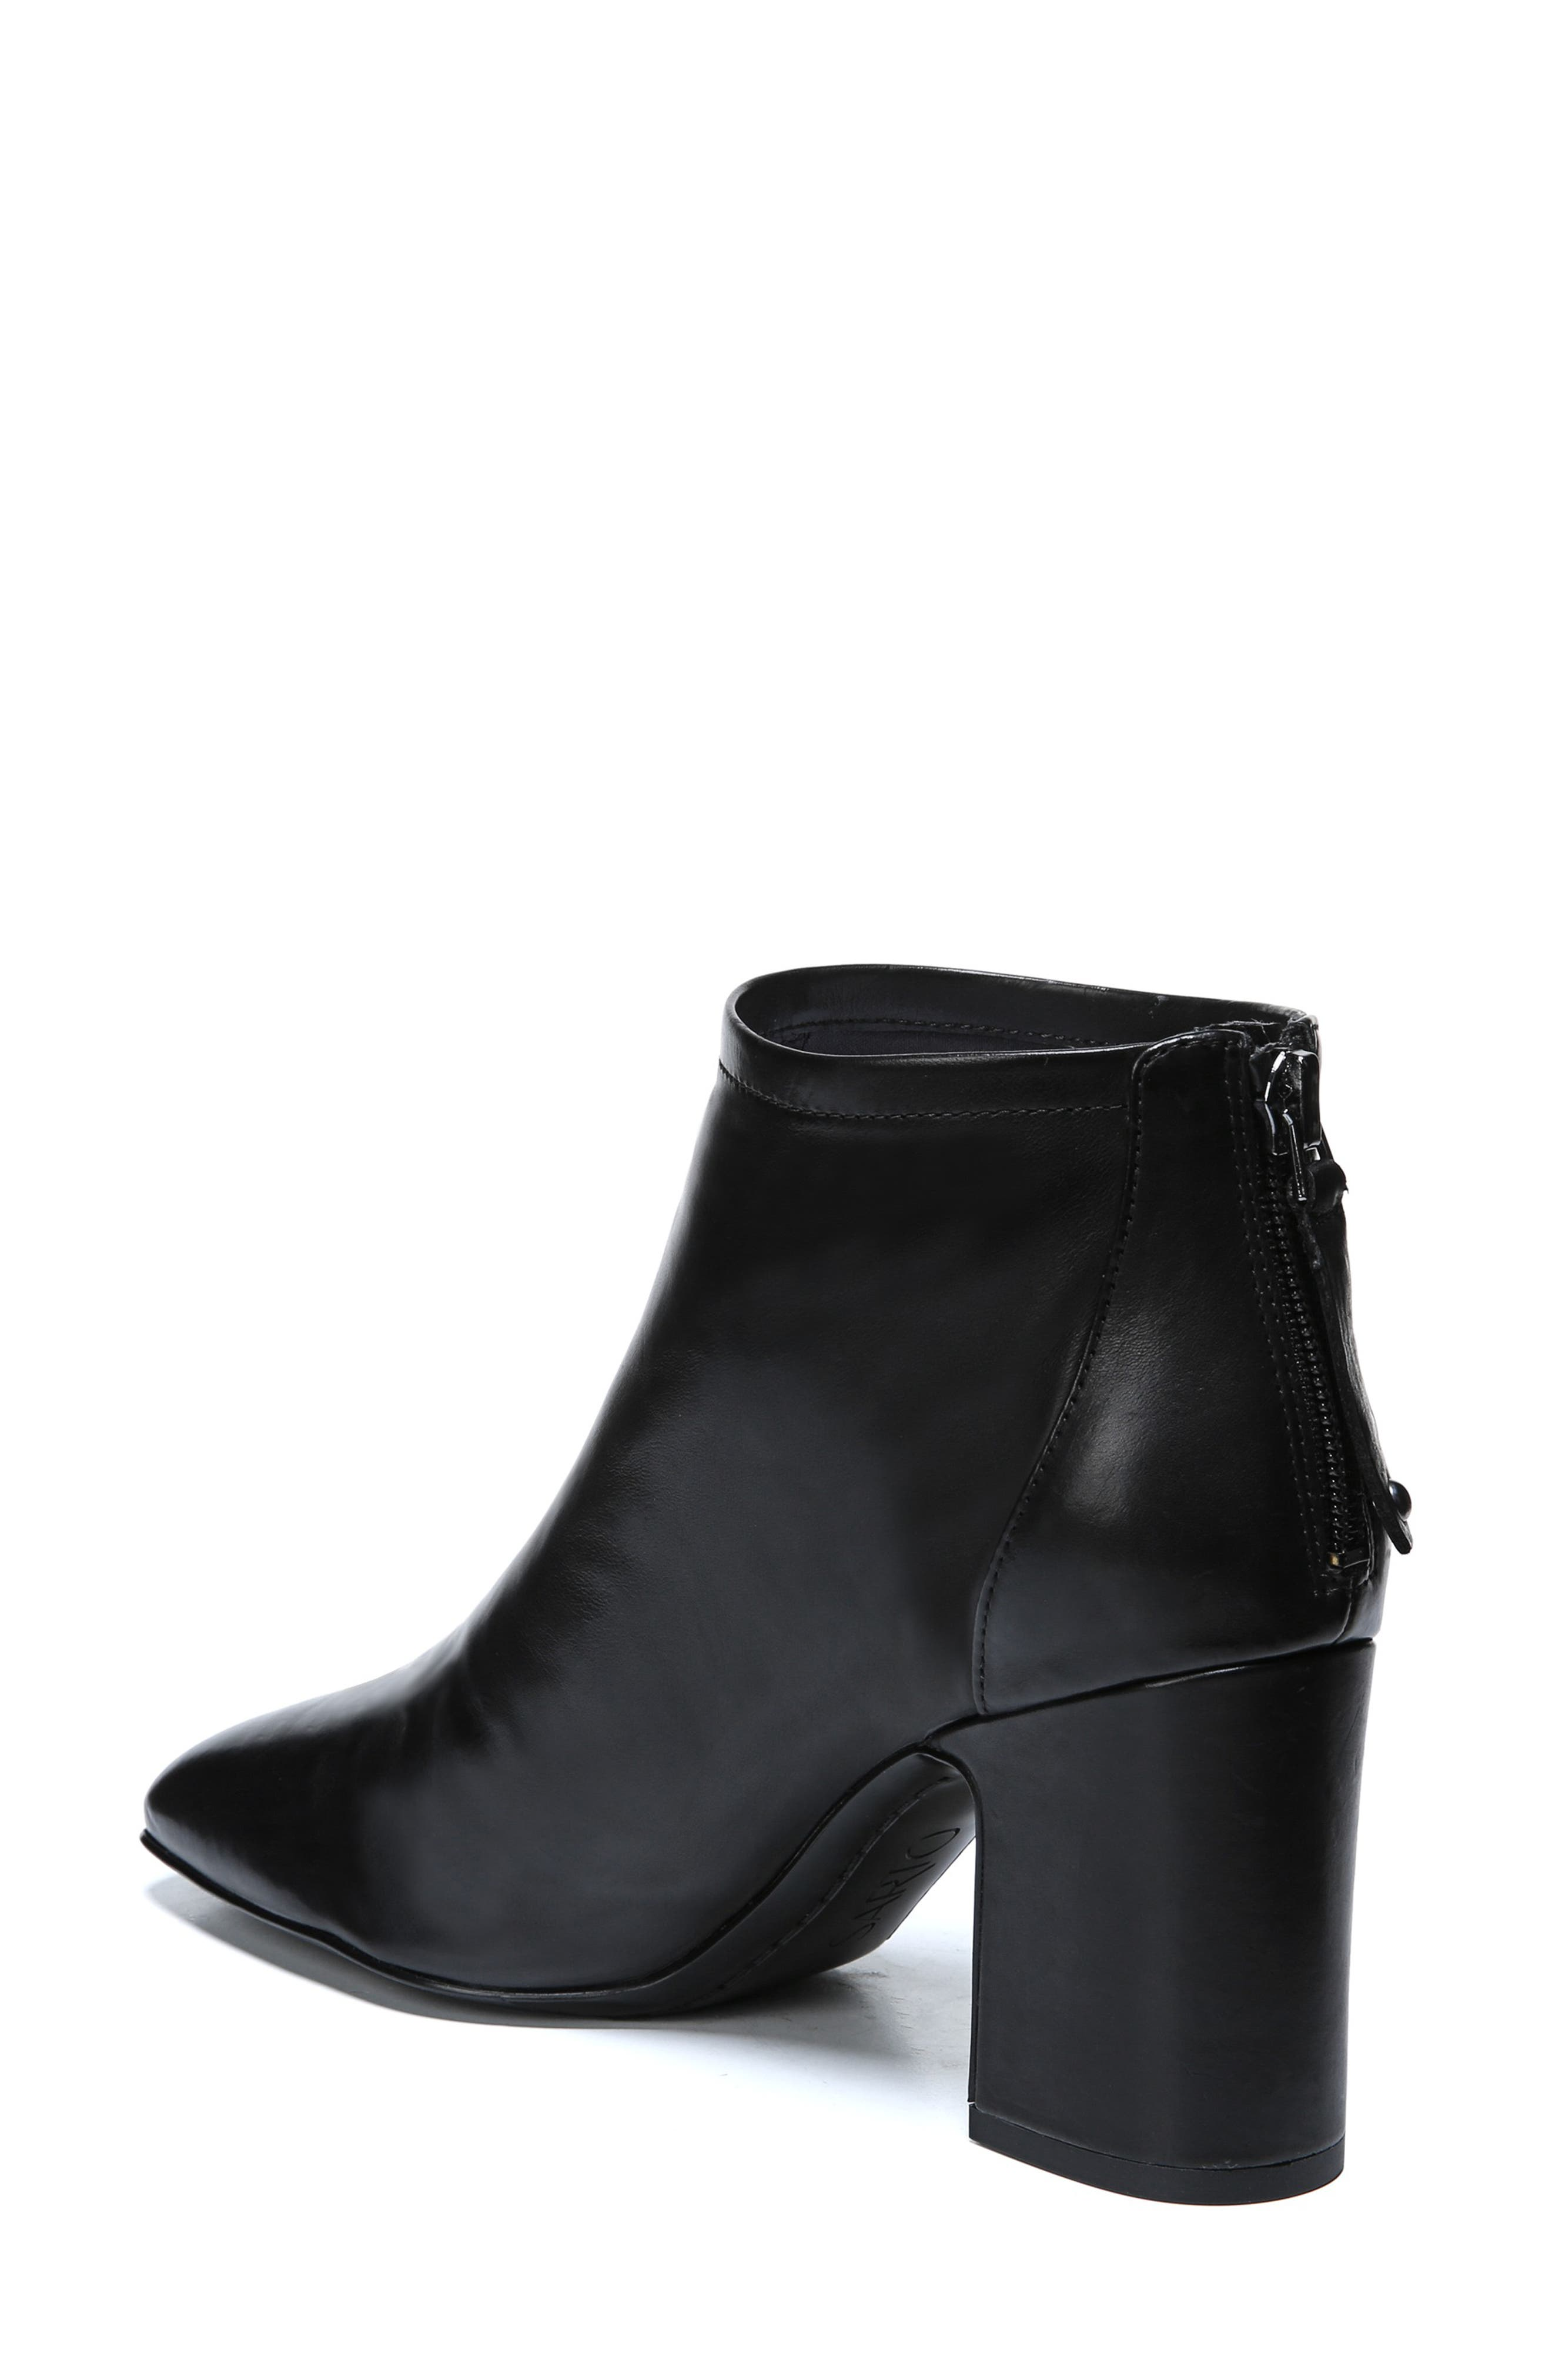 Jacoby Bootie,                             Alternate thumbnail 2, color,                             BLACK STRETCH LEATHER